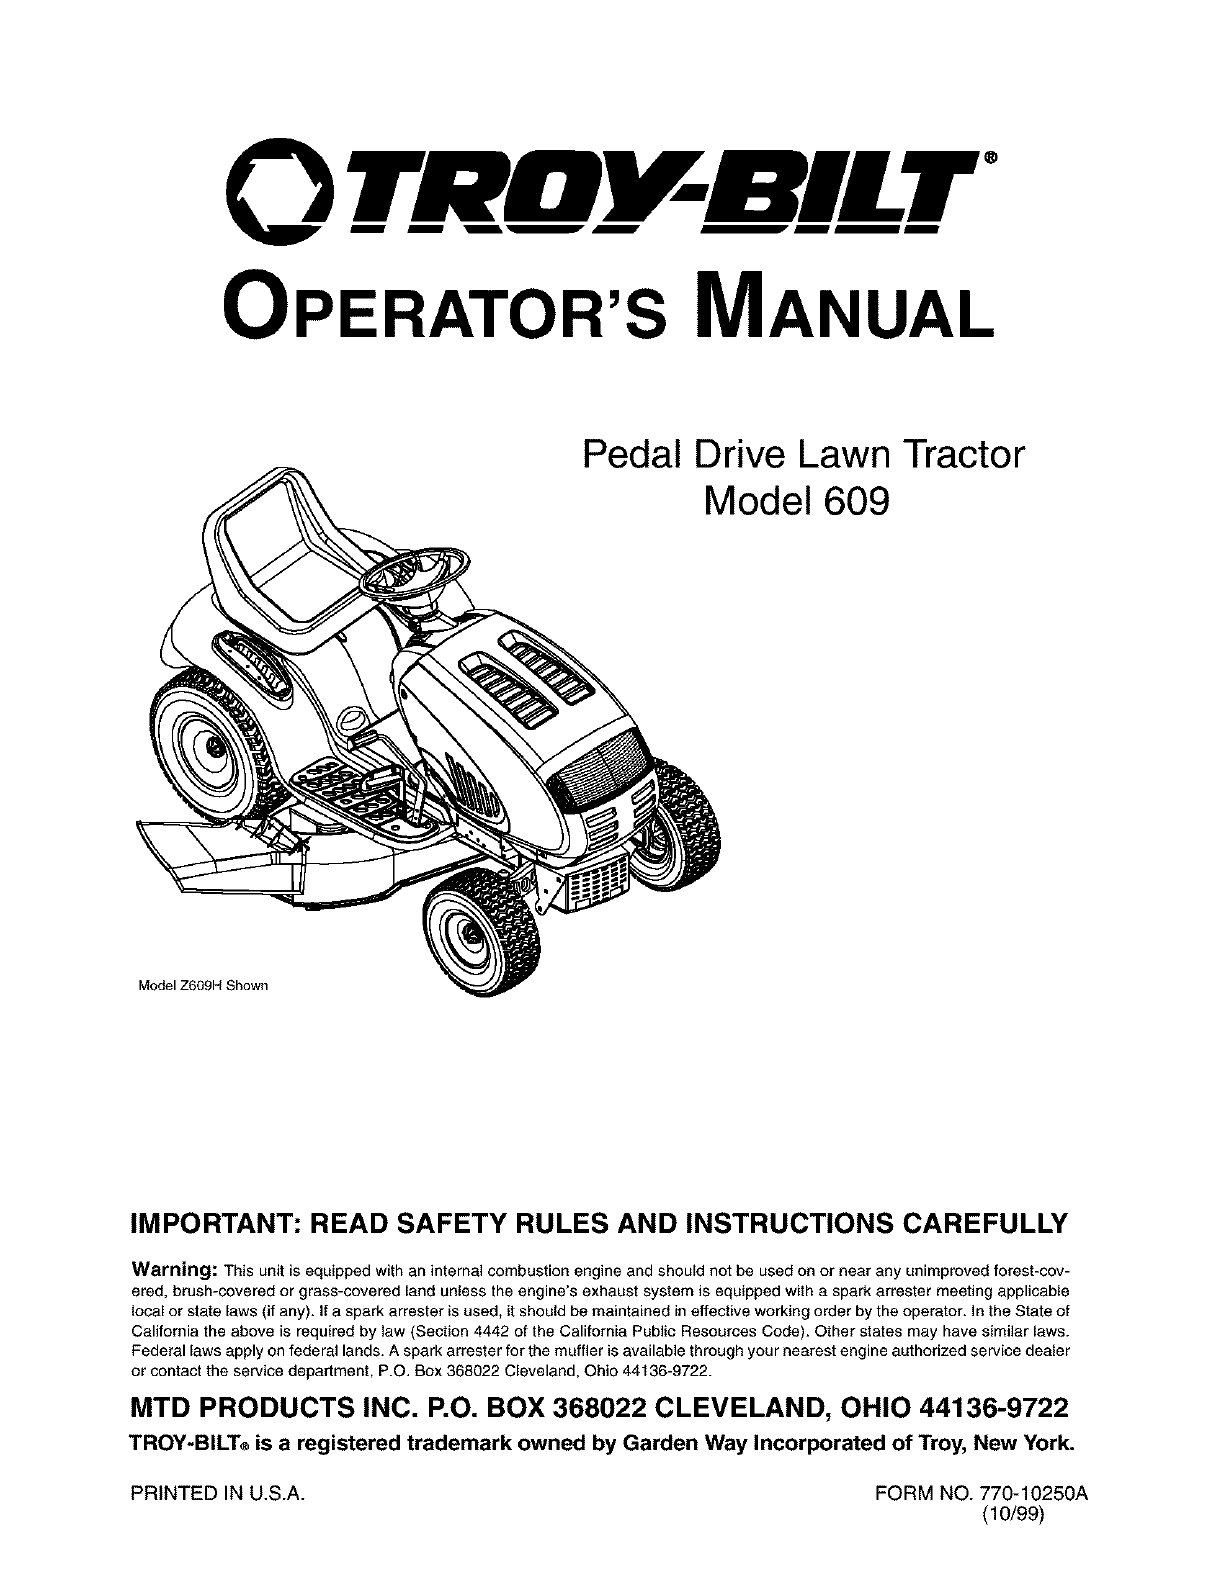 Troybilt 13AQ609G063 User Manual LAWN TRACTOR Manuals And Guides